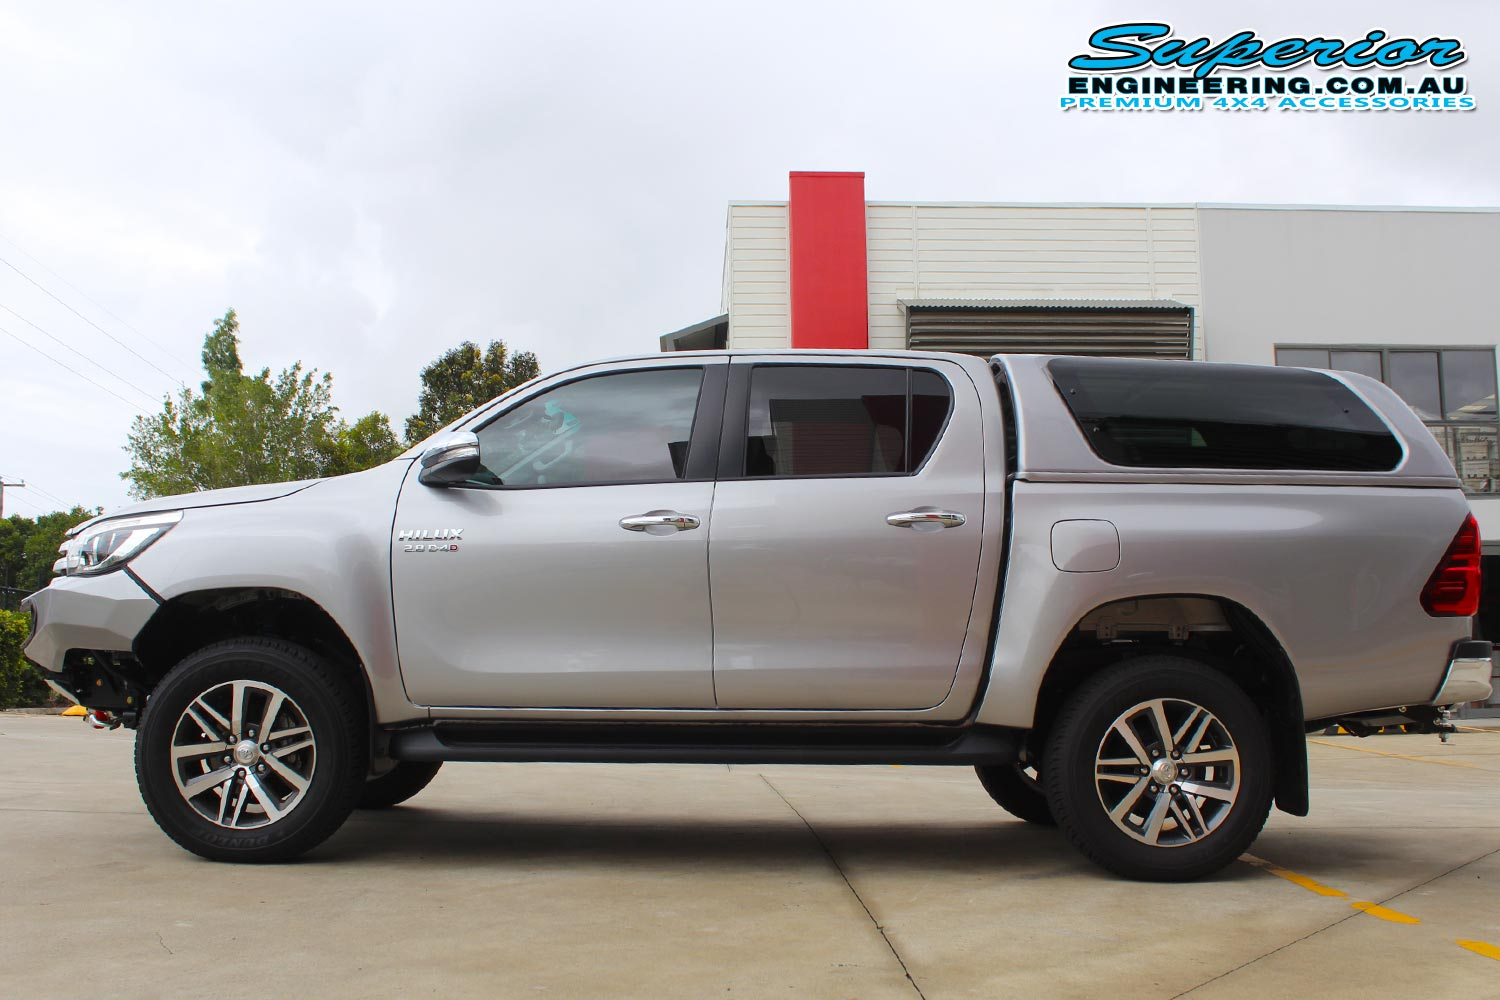 Left side view of a Silver Toyota Hilux Revo (dual cab) after being fitted with a top of the range 2 inch Bilstein lift kit at the Superior Engineering Deception Bay 4WD Workshop